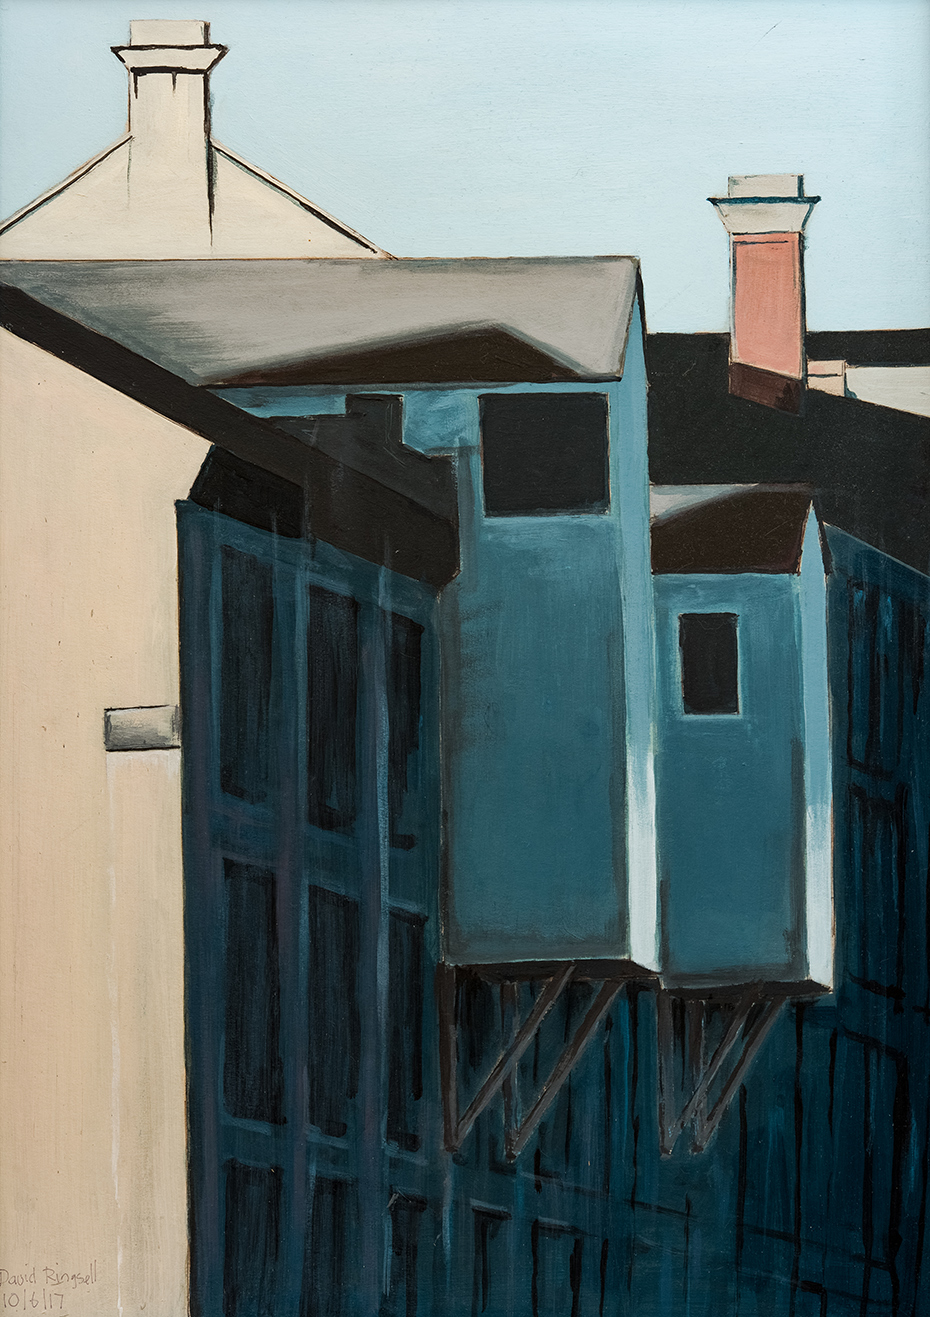 warehouses scene painted by bath-based contemporary artist david ringsell